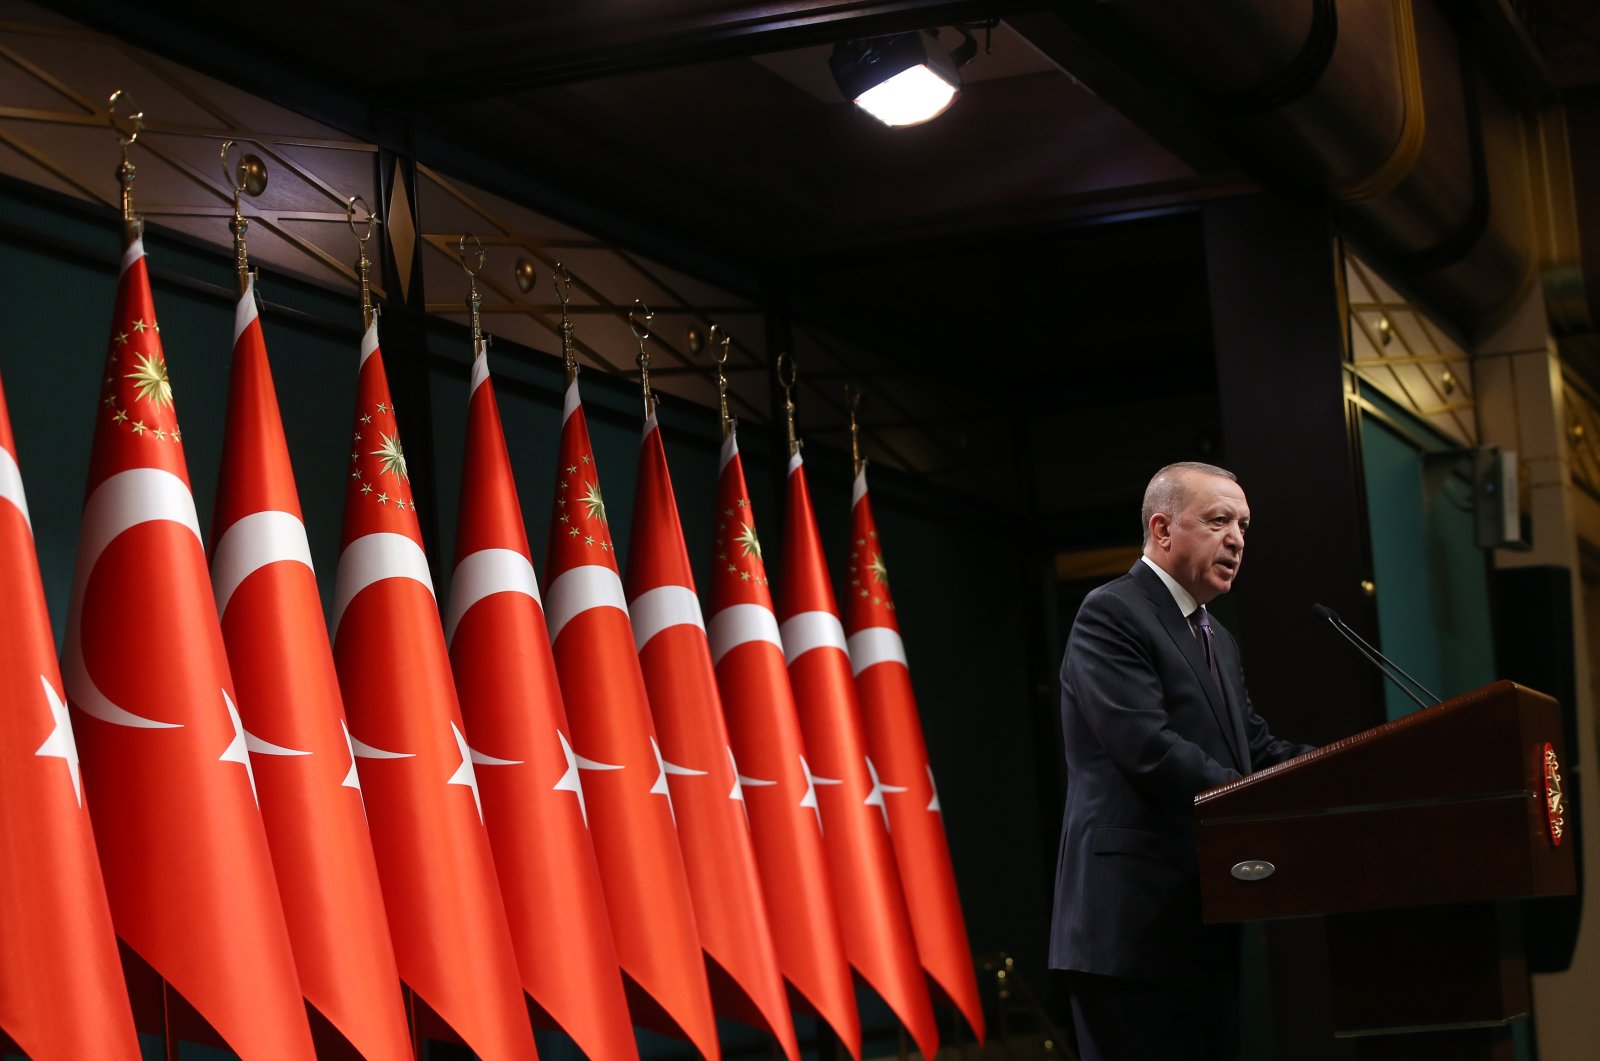 President Recep Tayyip Erdoğan speaks during a press conference in Ankara's Presidential Complex on Apr. 26, 2021 (AA Photo)